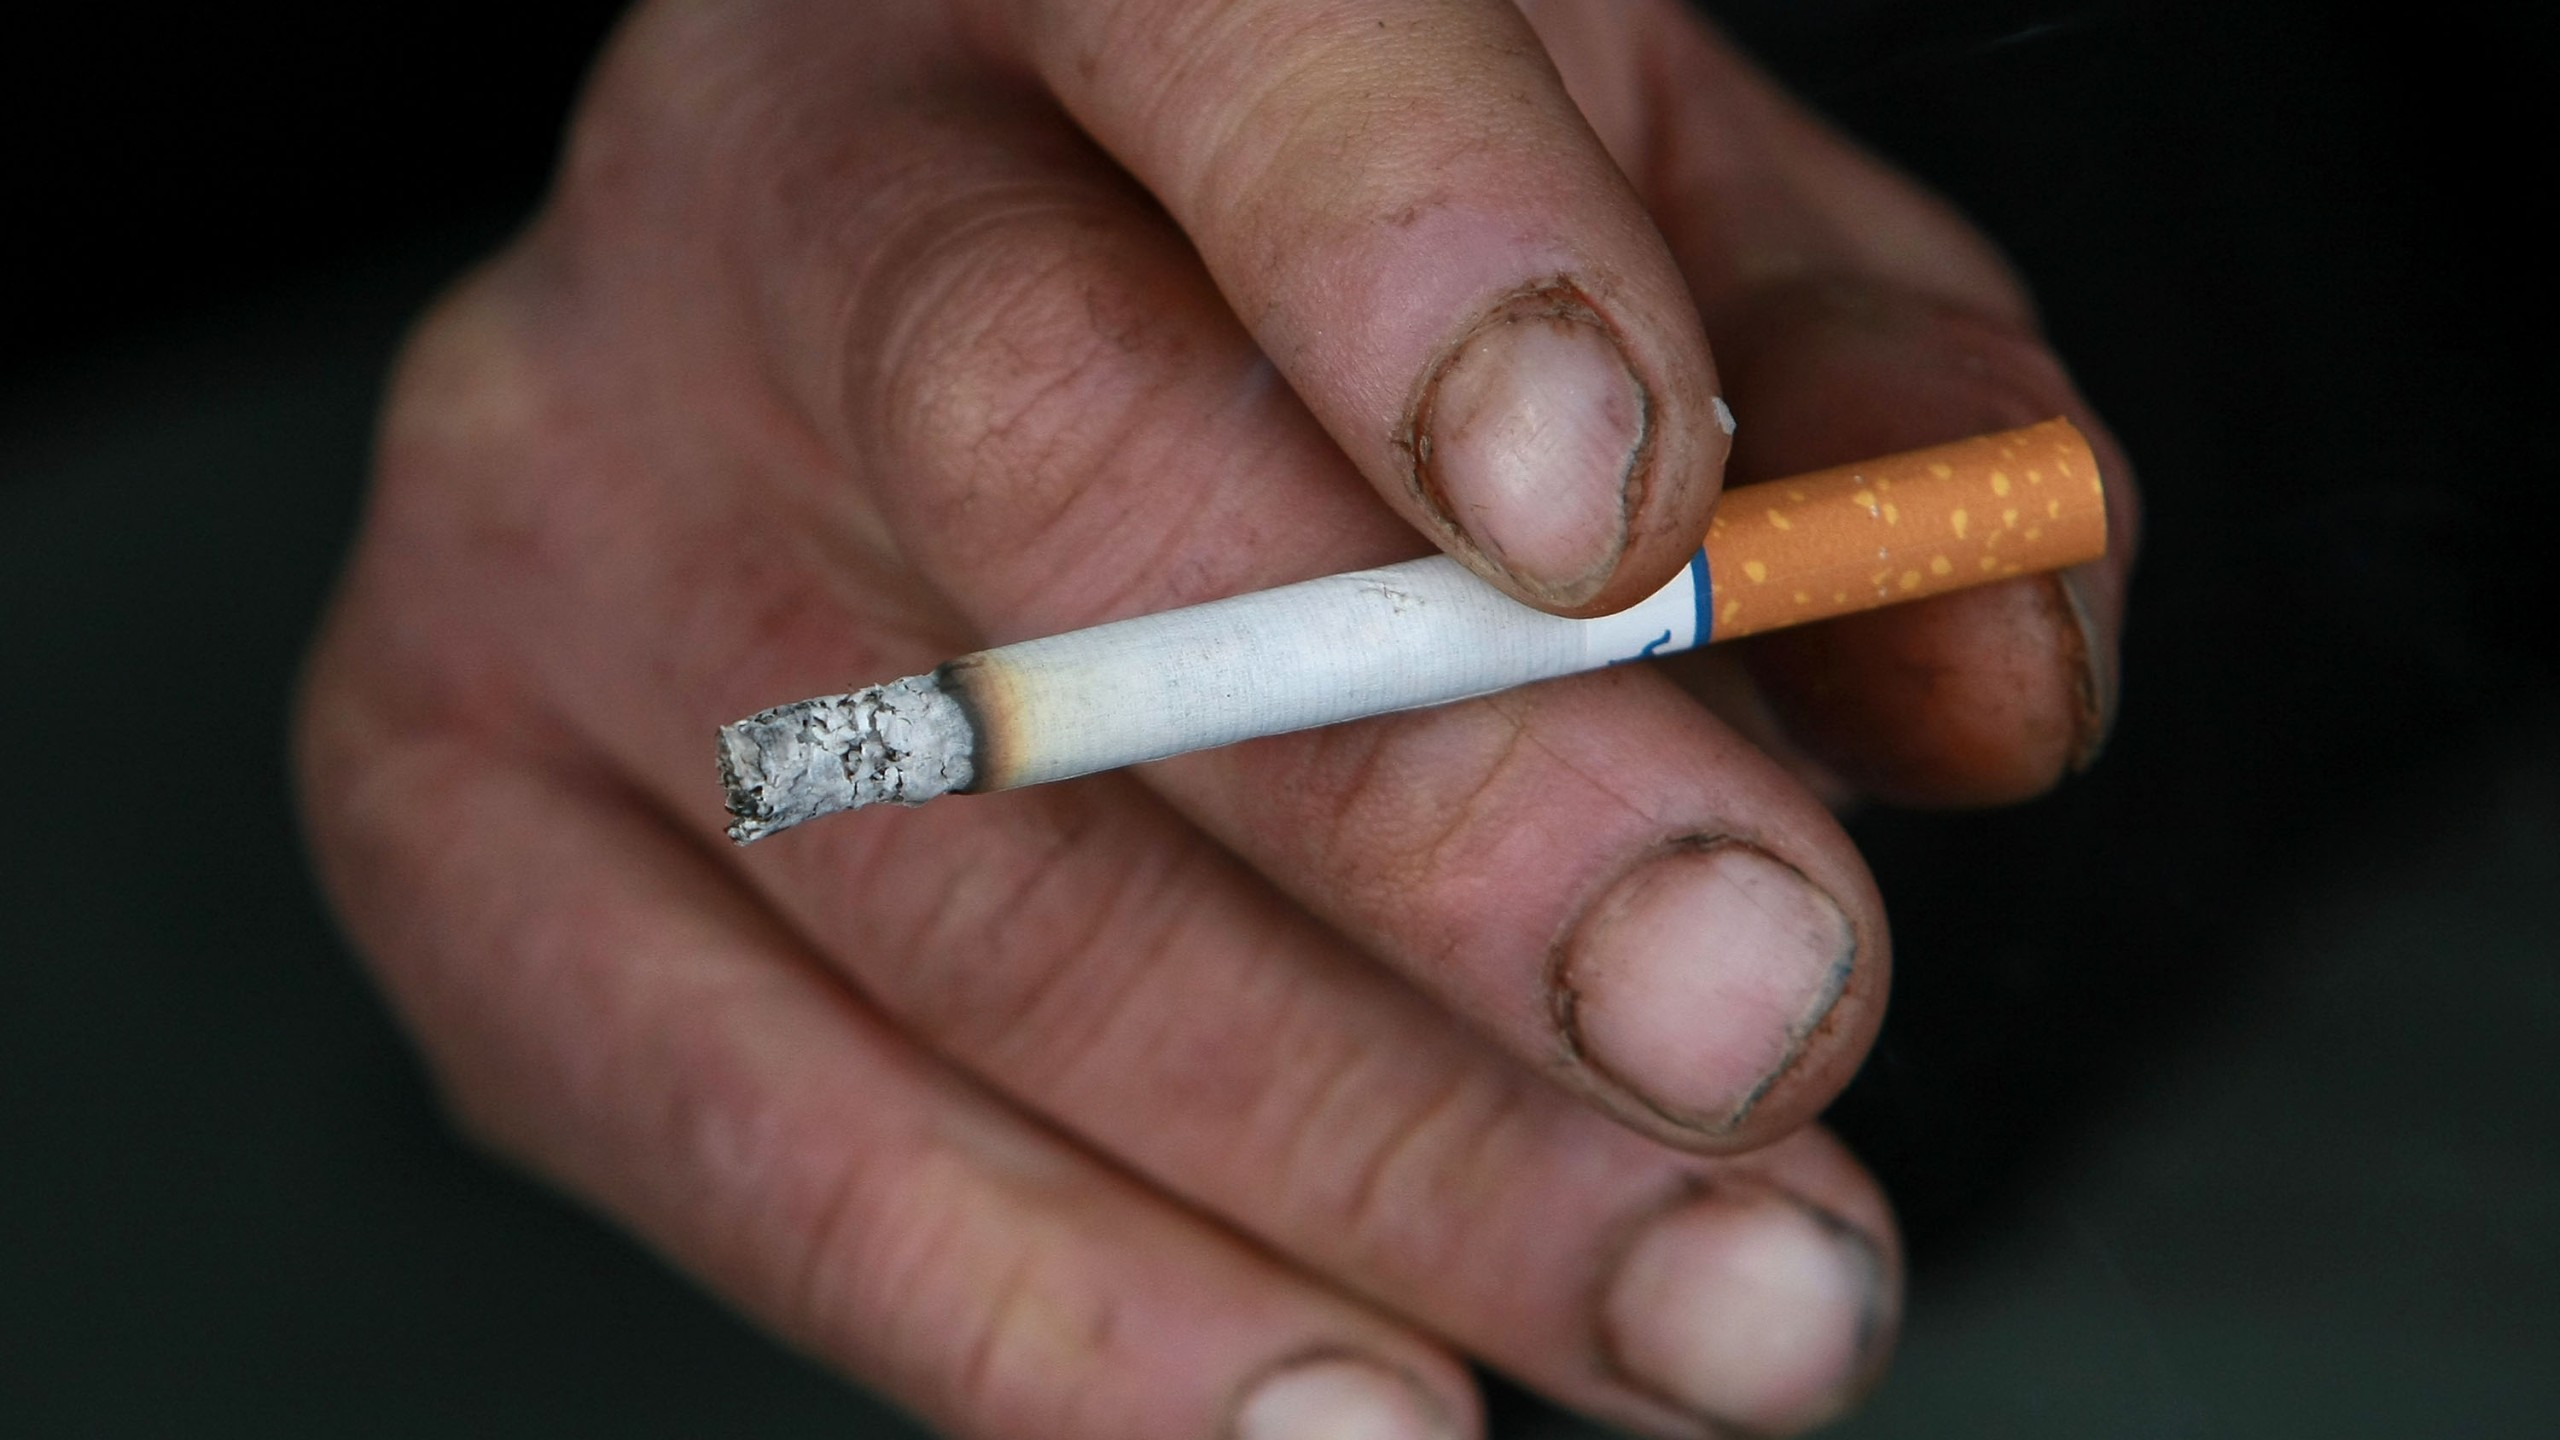 A man holds a cigarette outside of a tobacco store December 15, 2008 in San Francisco, California. The U.S. Supreme Court ruled today that people may file lawsuits against tobacco companies for deceptive advertising of 'light' cigarettes. (Credit: Justin Sullivan/Getty Images)